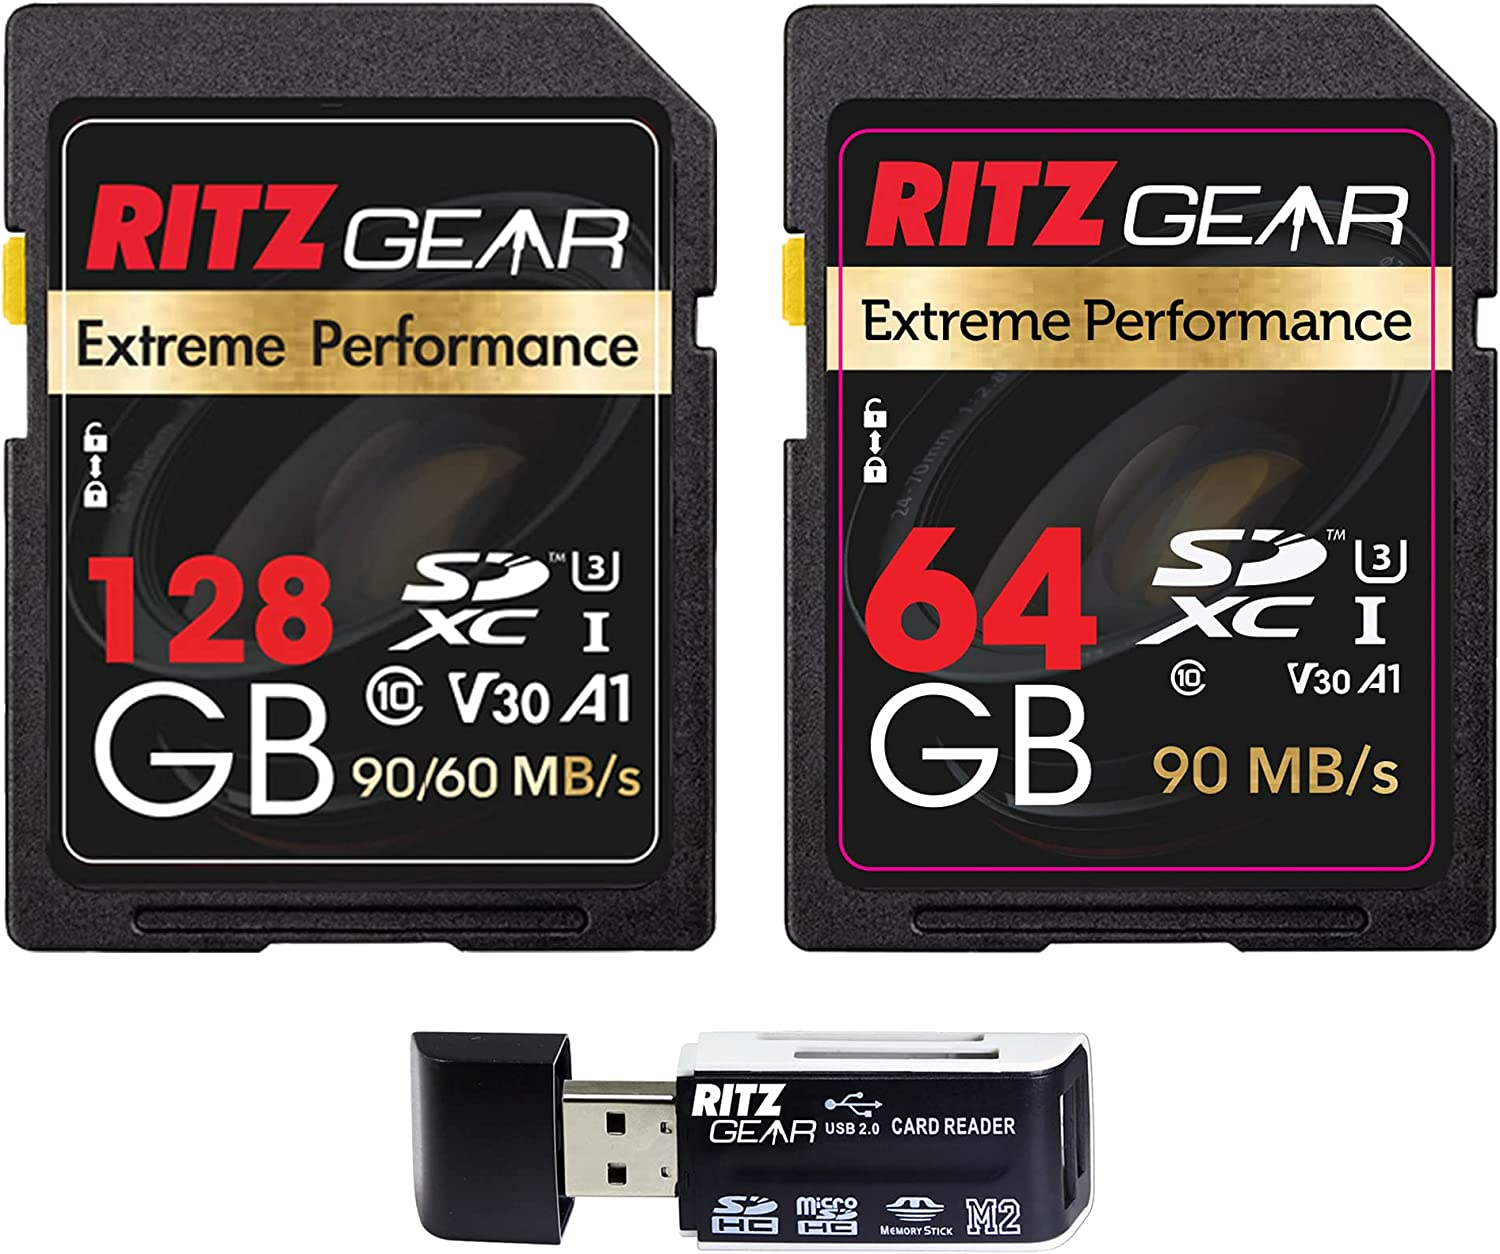 Extreme Performance Combo Set of High Speed UHS-I SDXC 128GB SD Card 90/60 MB/S U3 A1 Class-10 V30 Memory + 64GB Memory Card+ Ritz Gear Card Reader